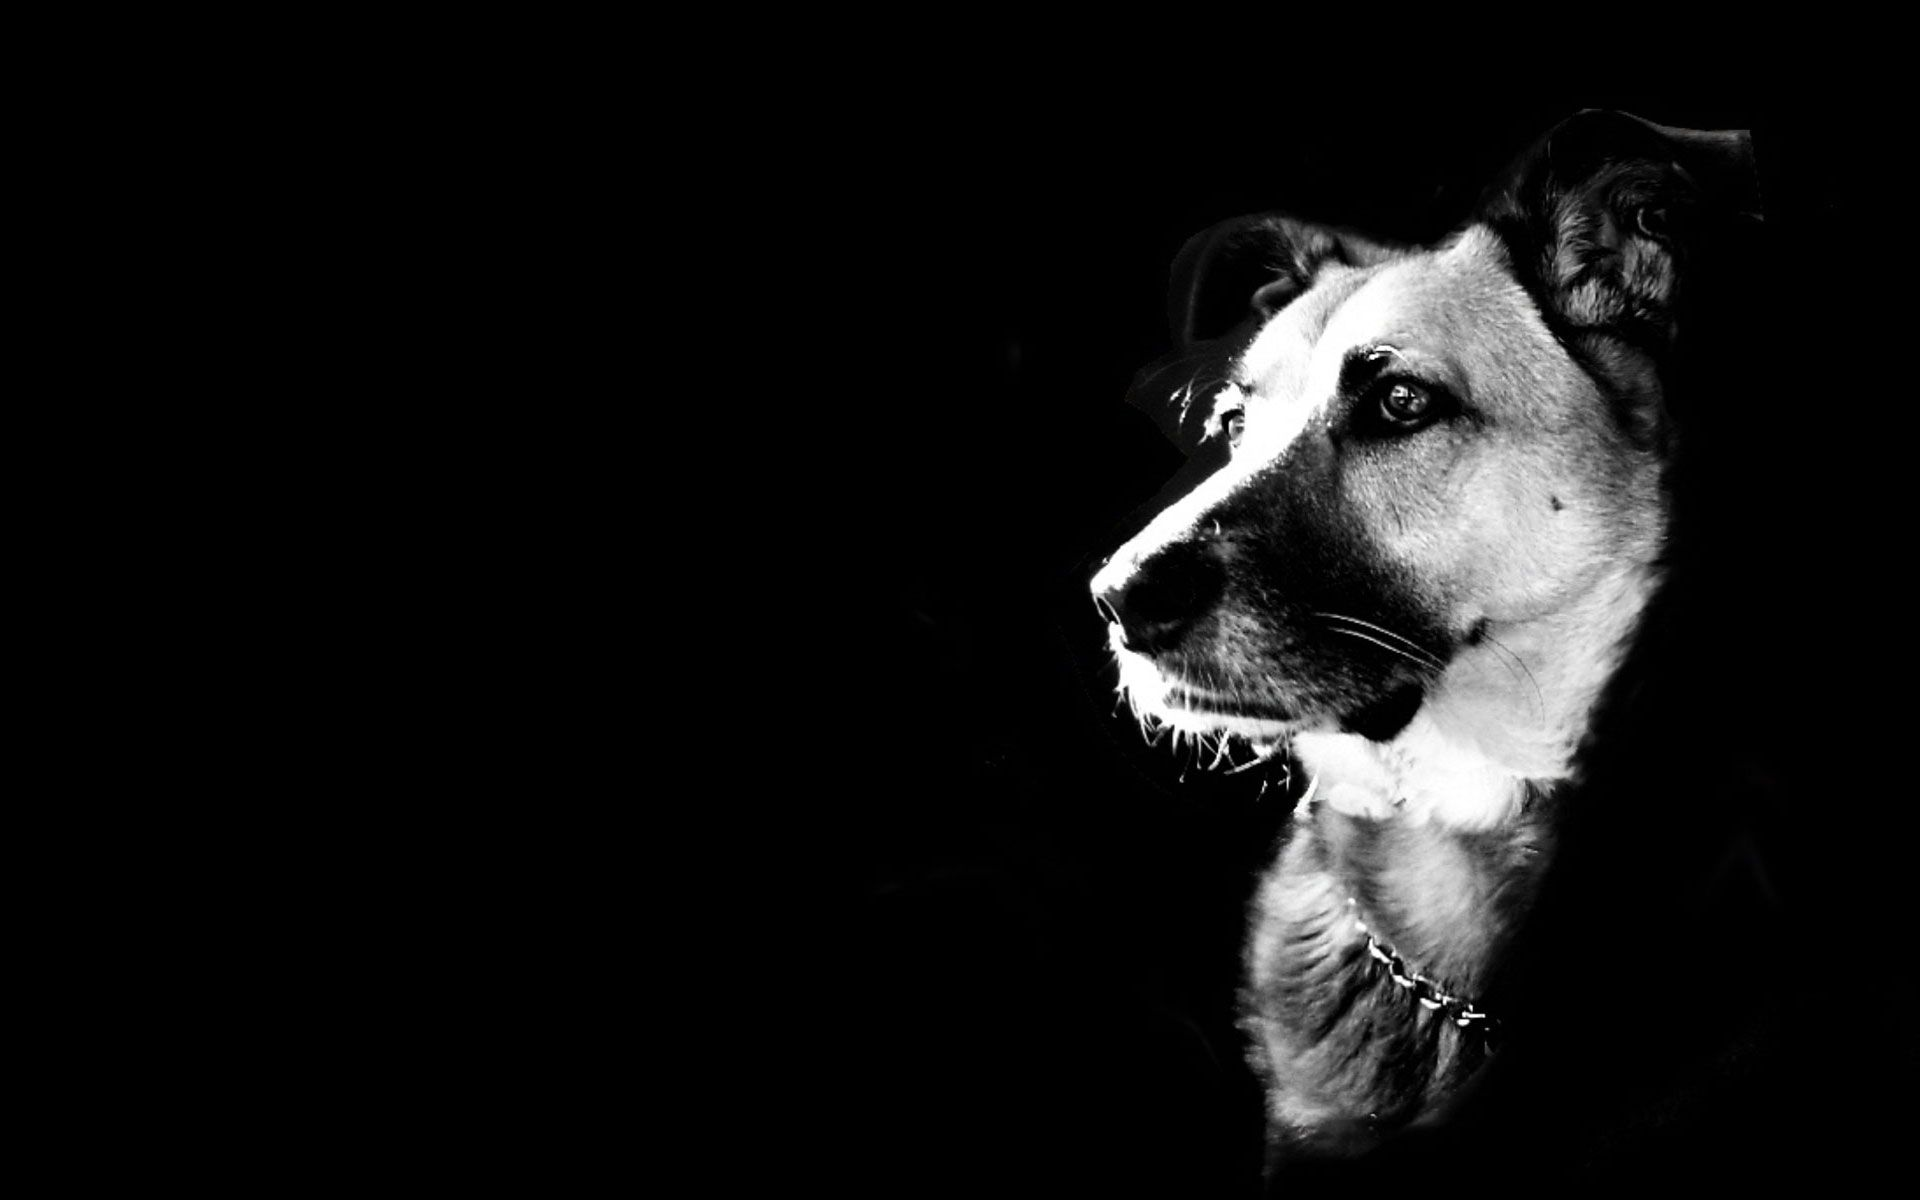 1920x1200 - Wallpaper Dogs Black and White 1